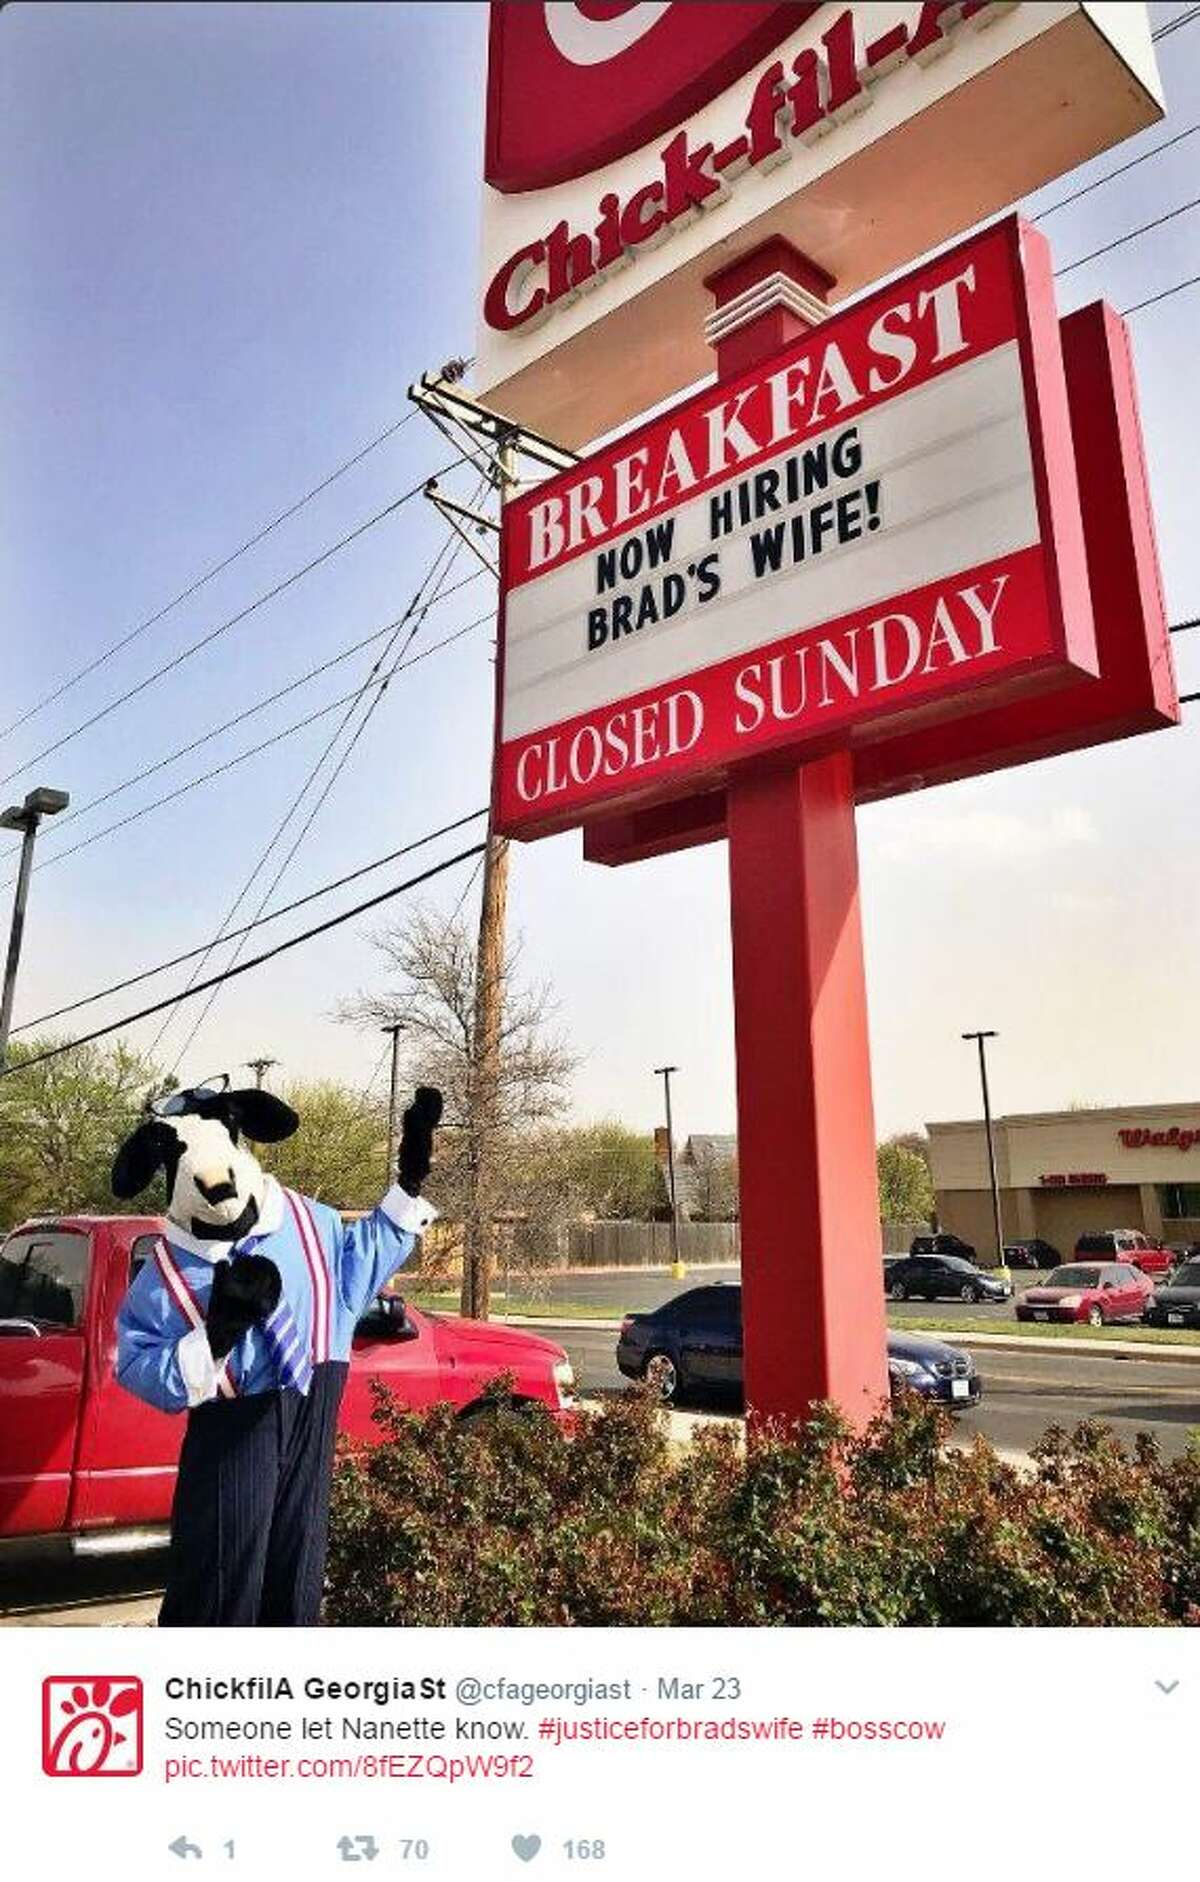 A Chick-Fil-A in Amarillo Texas has gotten in on #JusticeforBradswife, offering to hire her after she was inexplicably fired from a Cracker Barrel in Indiana.